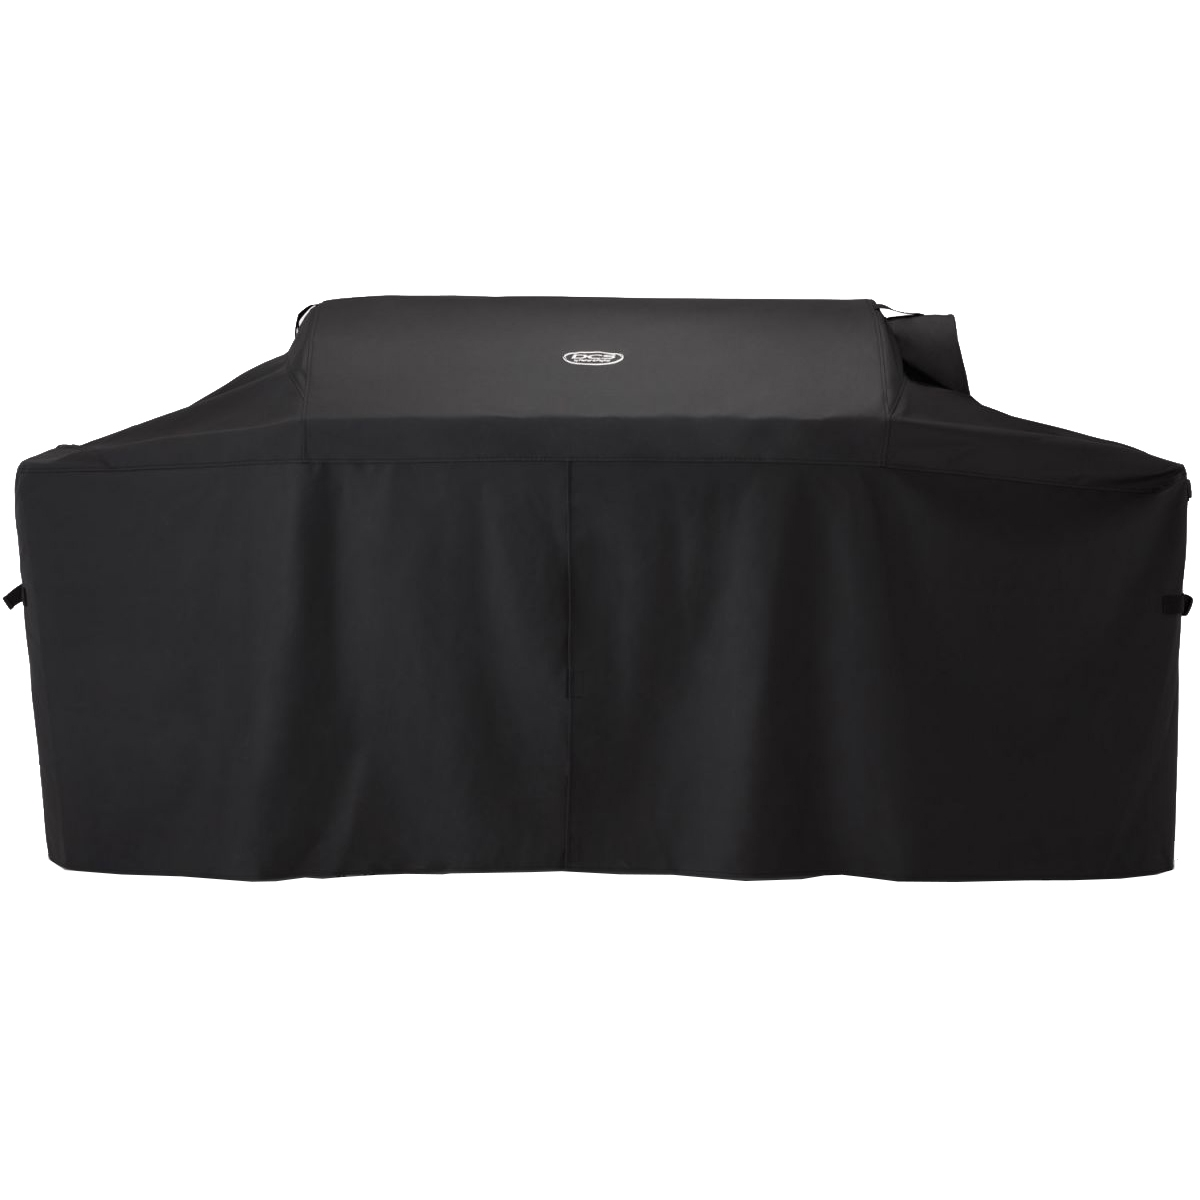 DCS Grill Cover for 36 inch Cart Mounted Grills